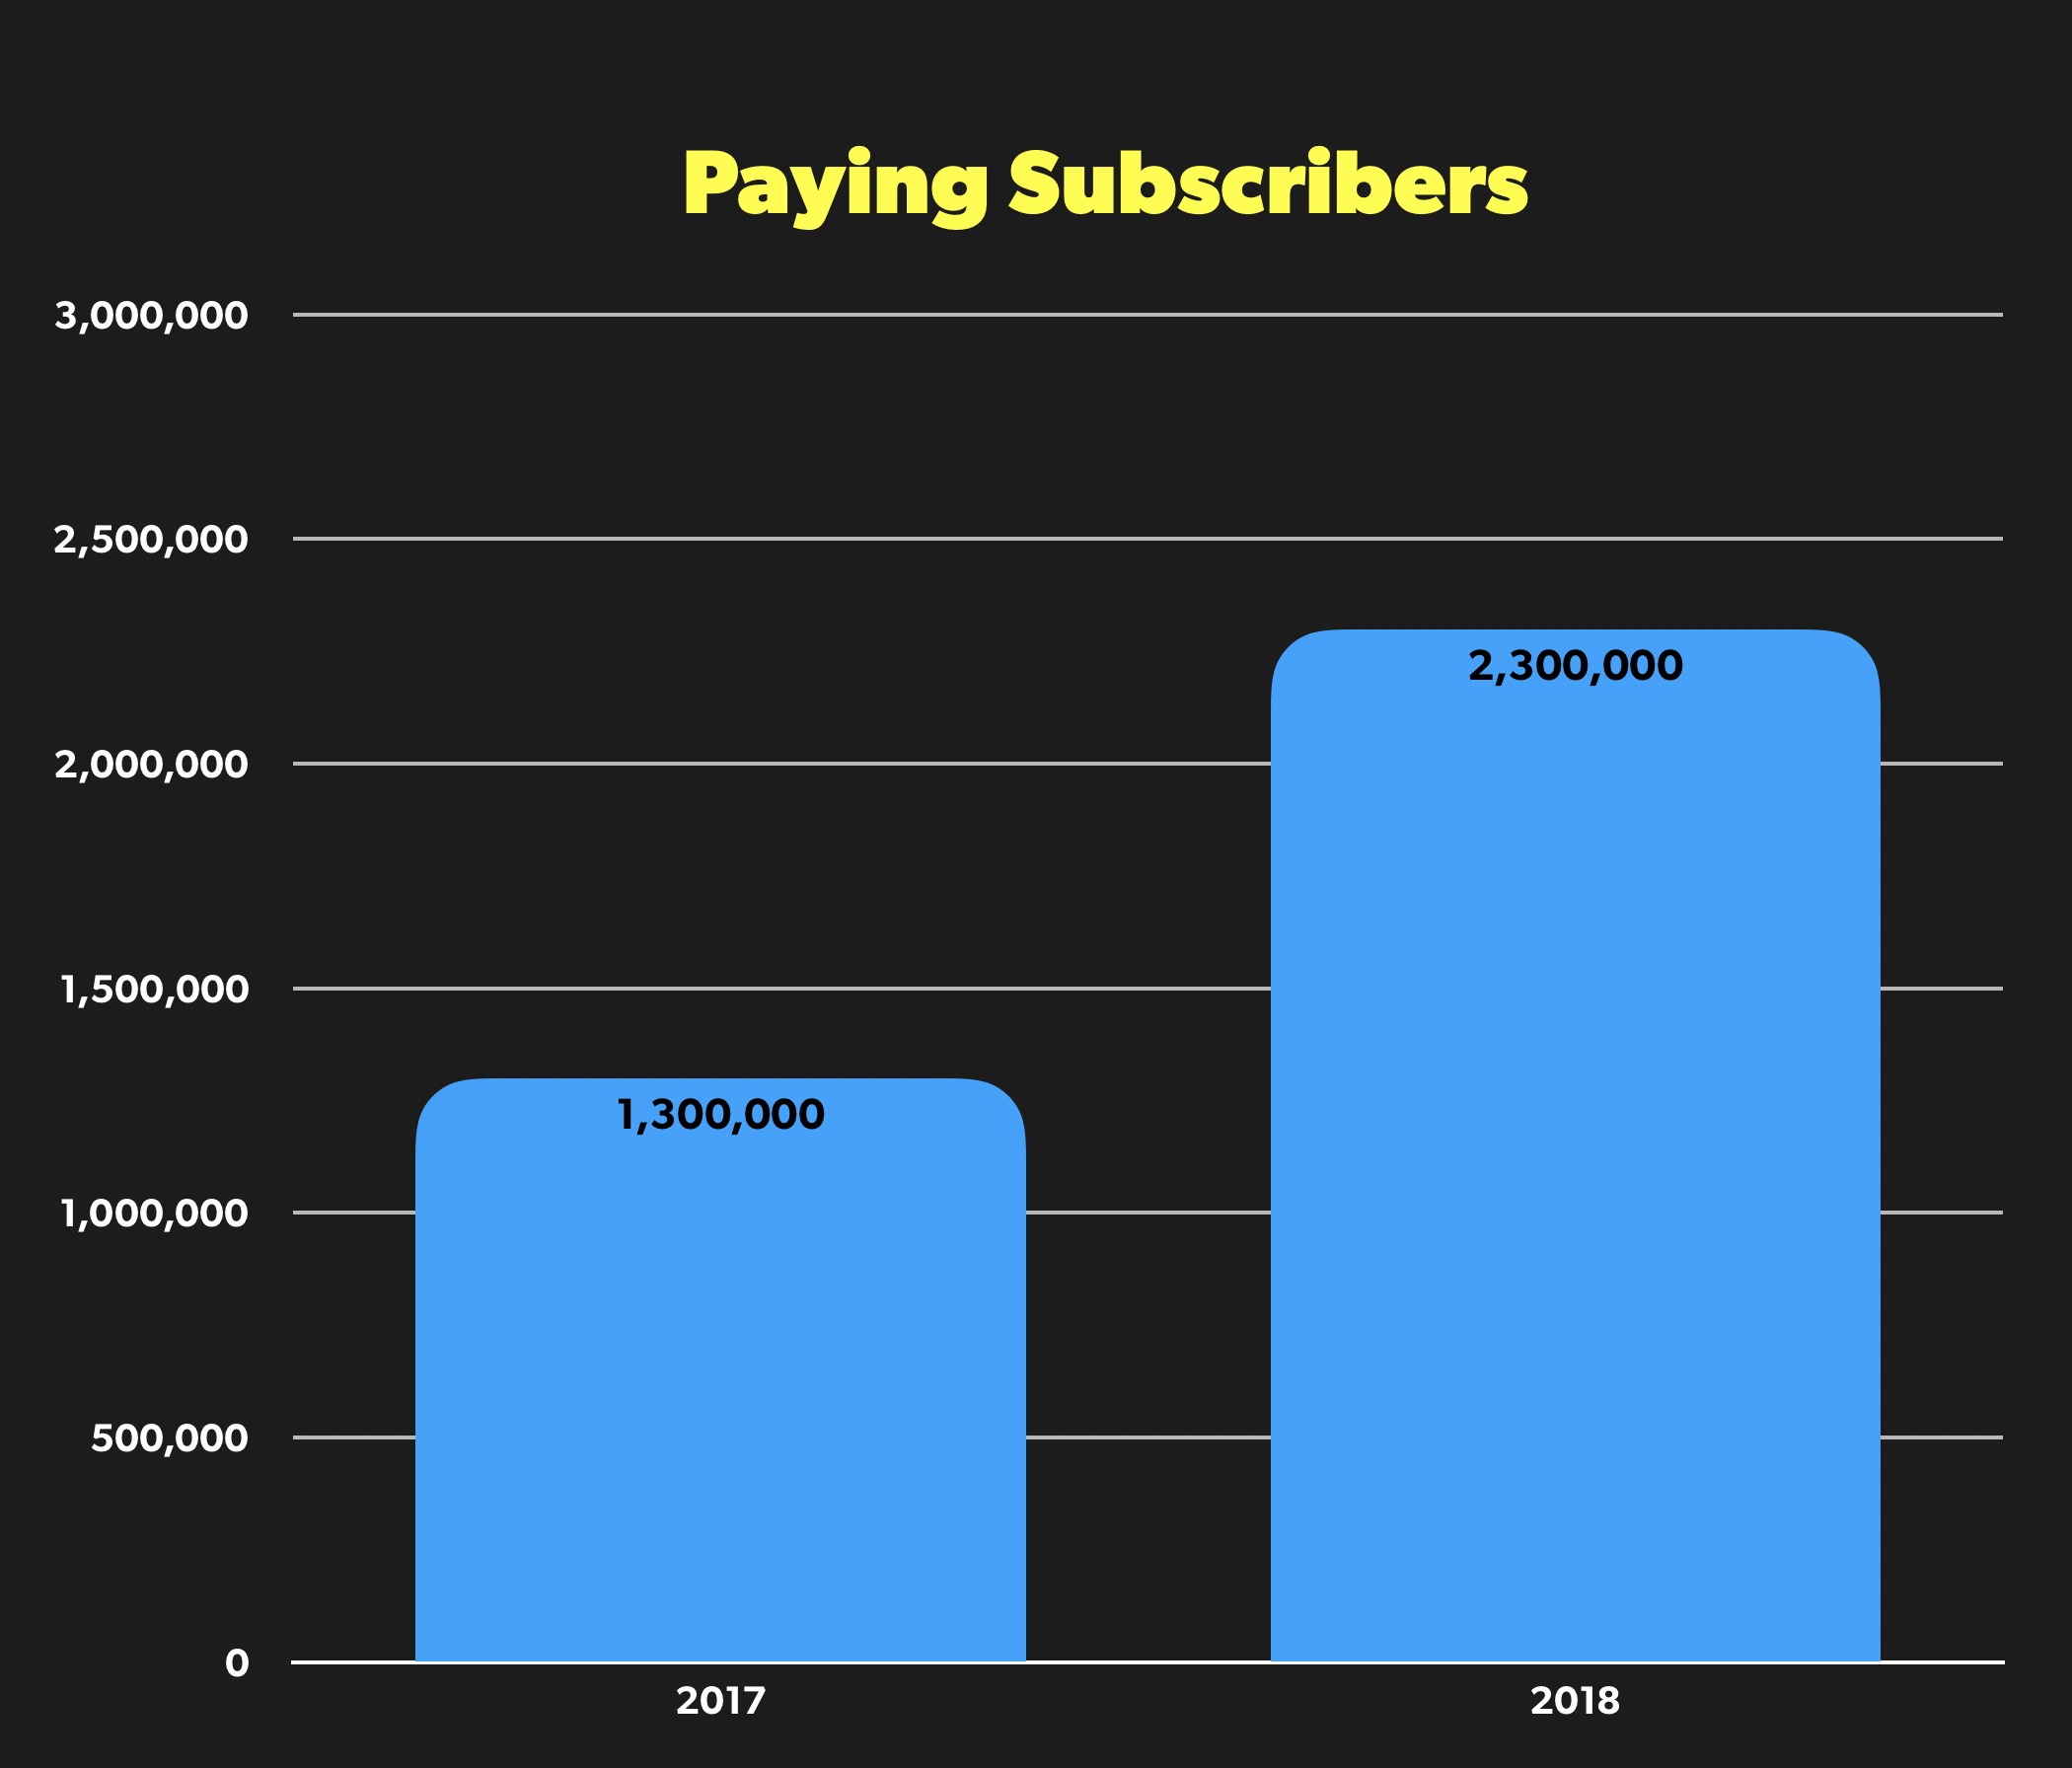 Paying Subscribers Year Over Year